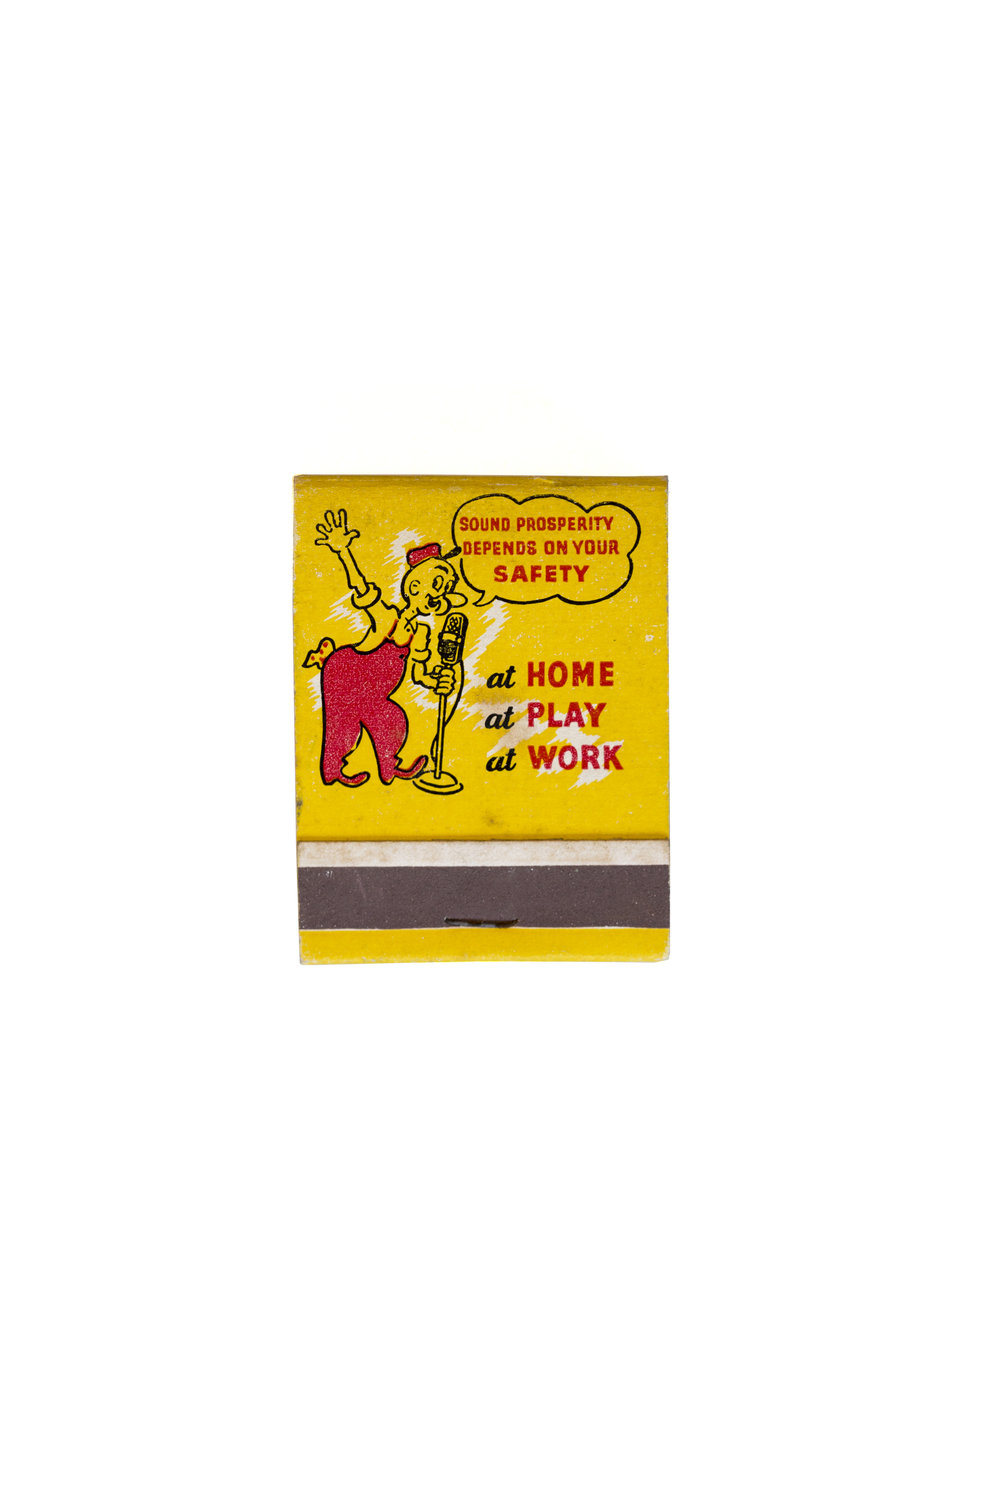 38. Ray matchbook